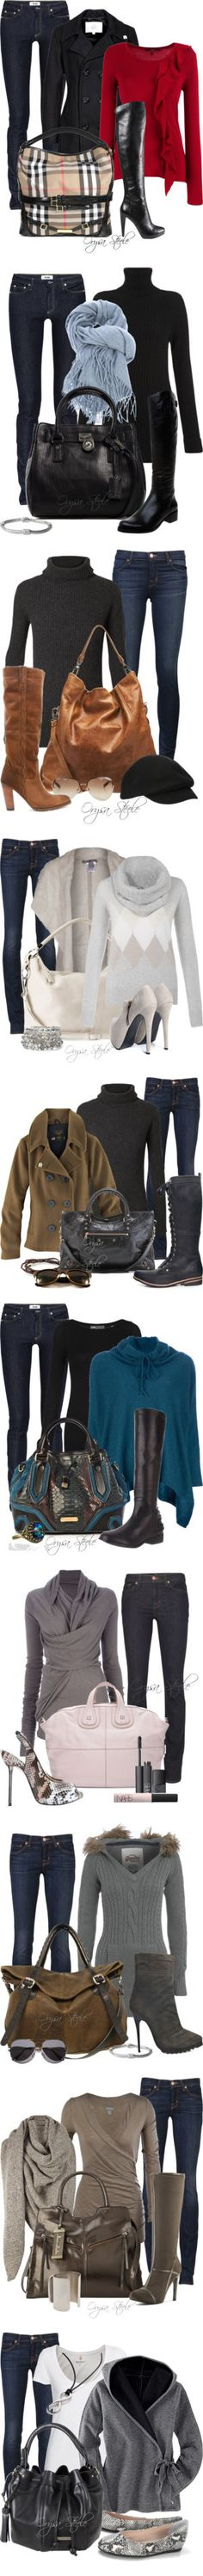 The Denim Collection by orysa on Polyvore featuring Acne Studios, Fidelity, Weekend Max Mara, Burberry, Nine West, Mulberry, Nomad, MICHAEL Michael Kors, Dune and John Hardy